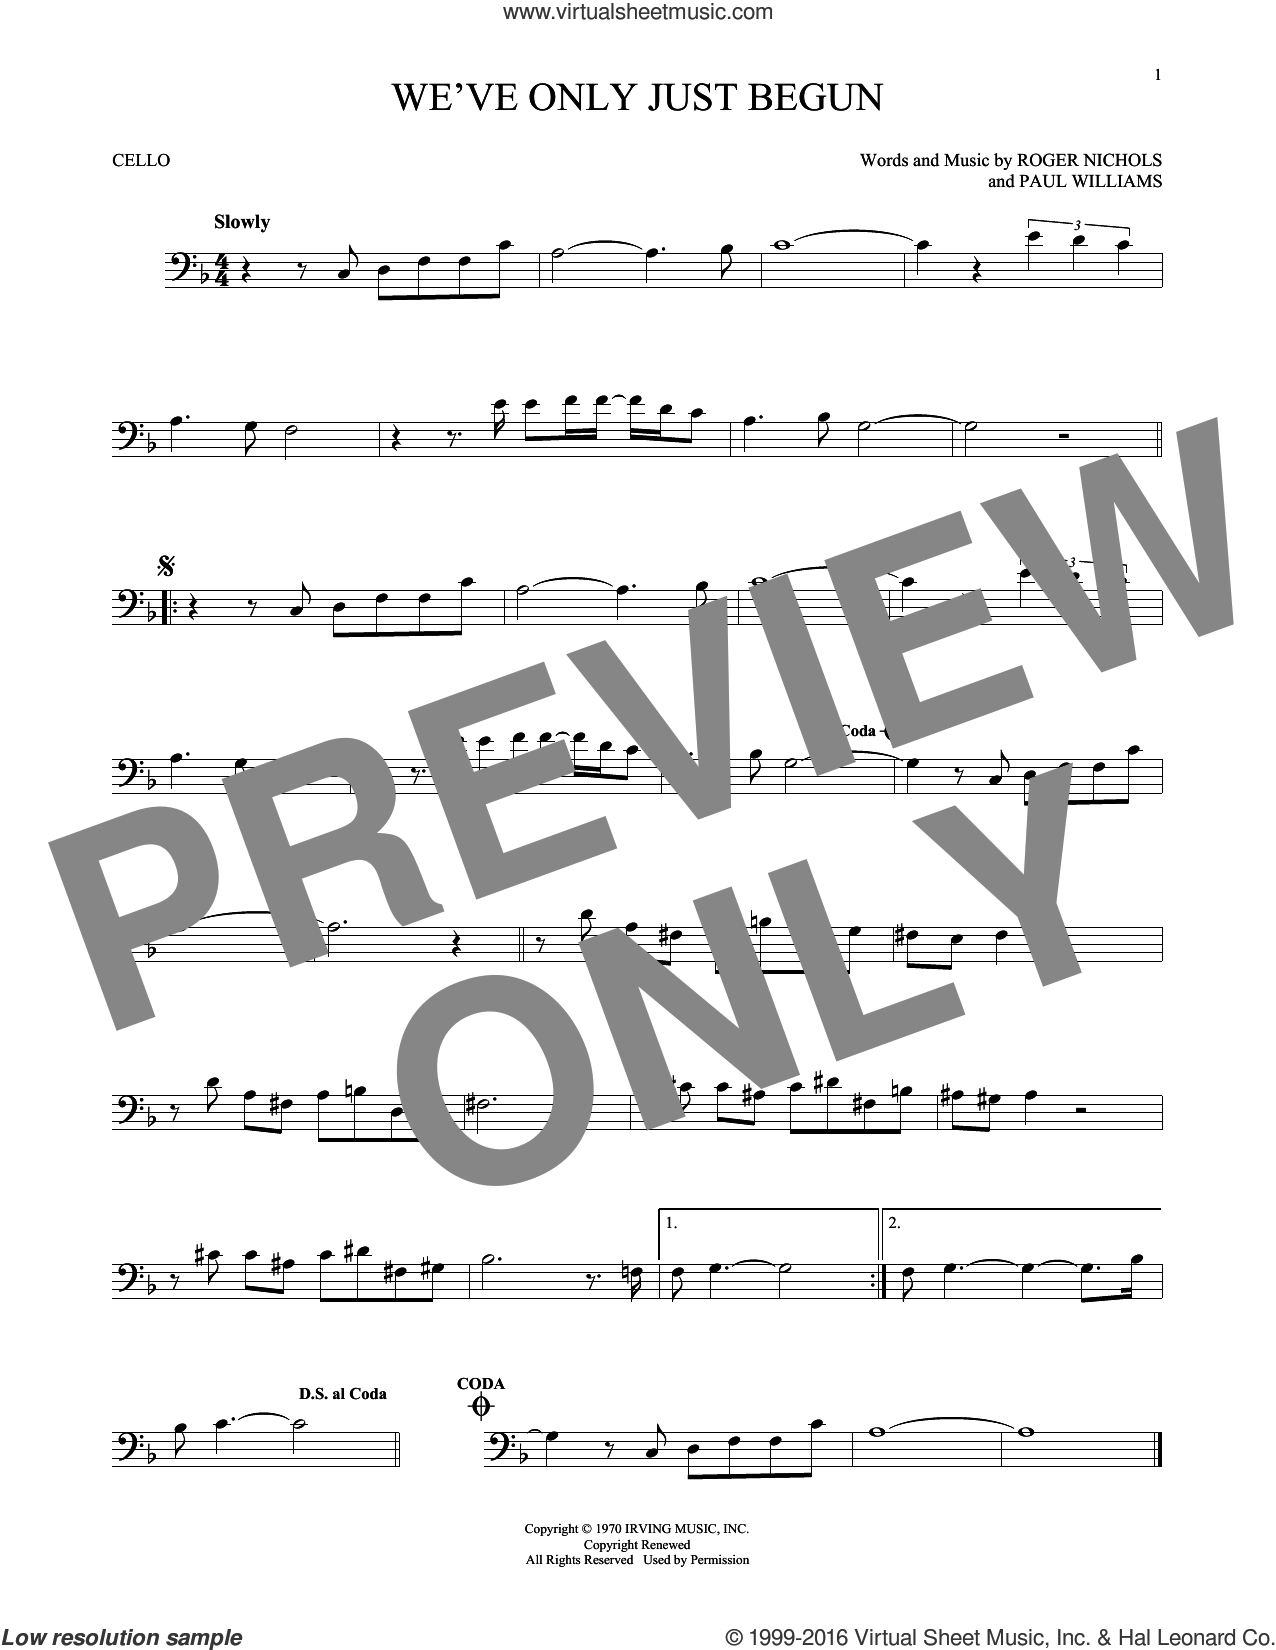 We've Only Just Begun sheet music for cello solo by Paul Williams, Carpenters and Roger Nichols, intermediate skill level